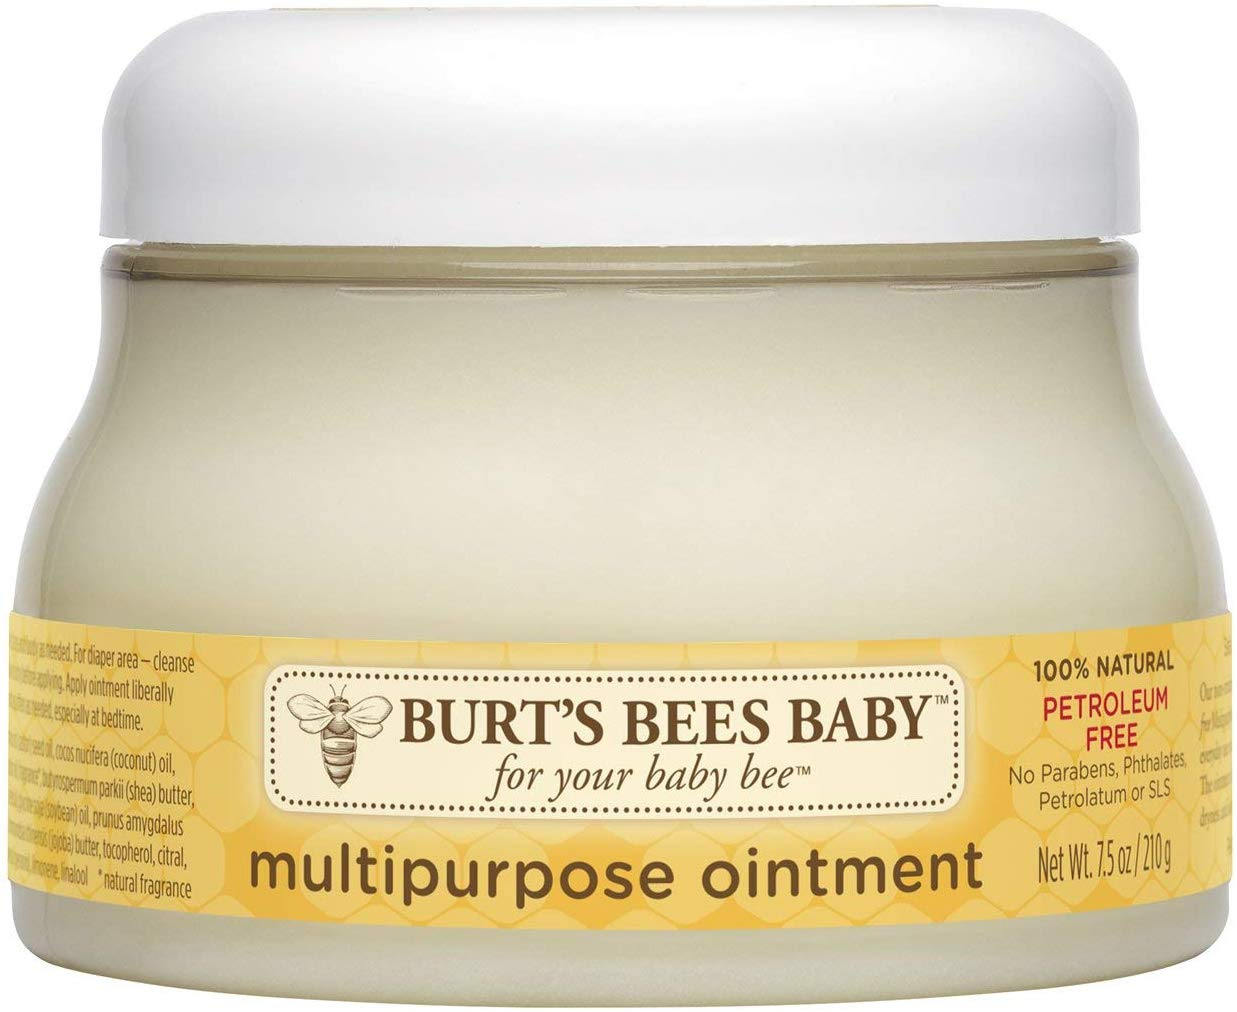 Burt's Bees Baby 100% Natural Multipurpose Ointment